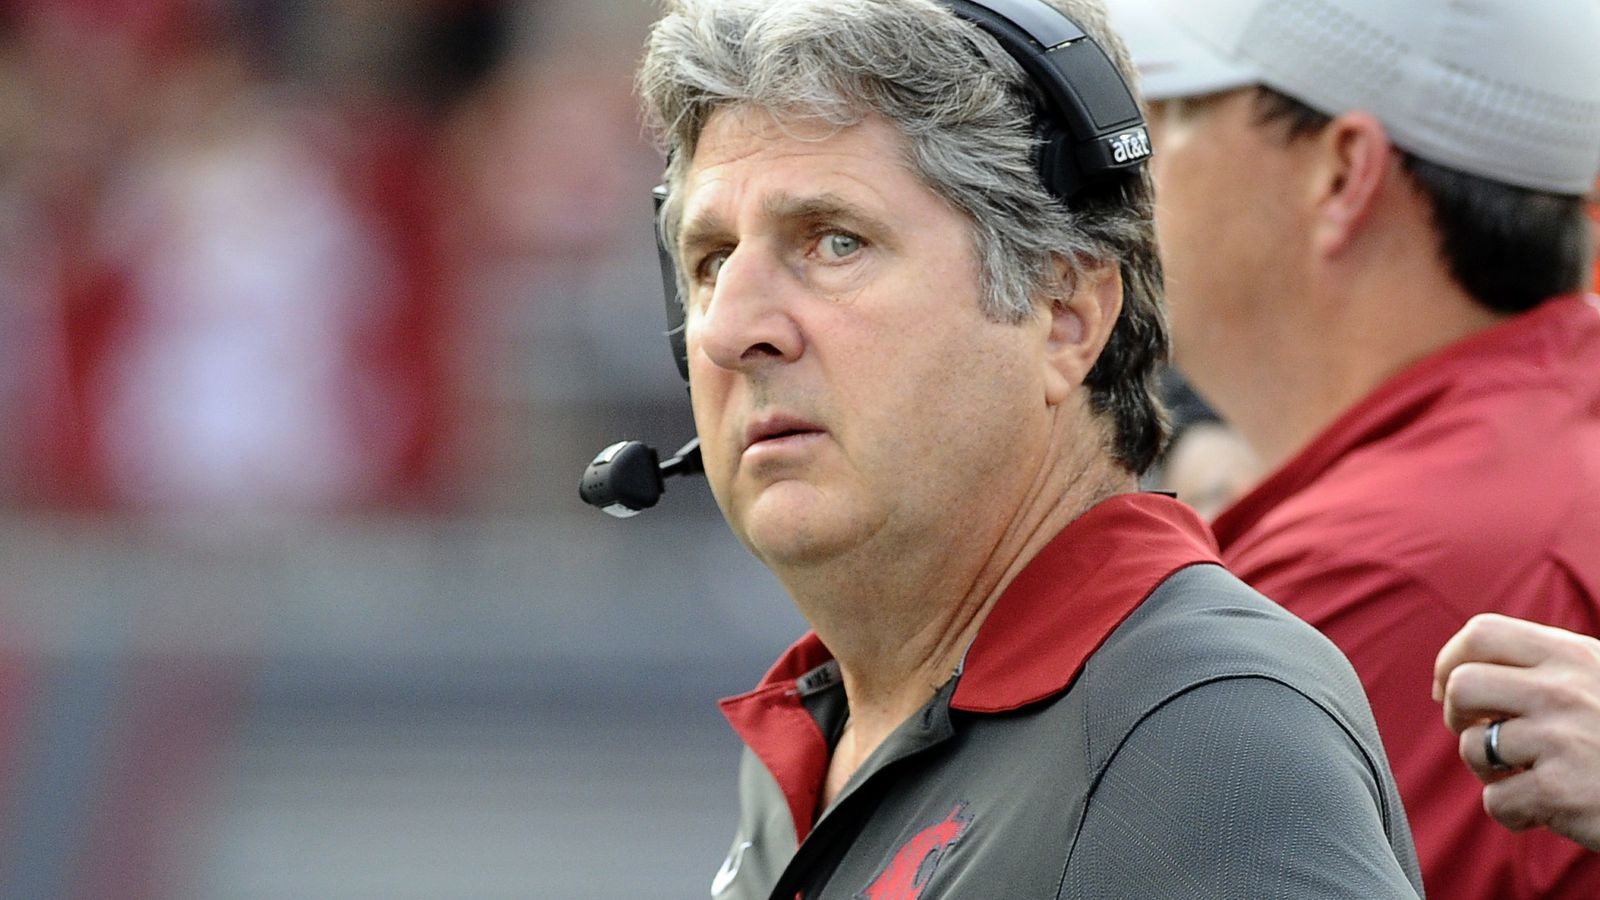 Mike Leach Wsu Cougars >> Mike Leach once signed a 'gigantic' bra - CougCenter